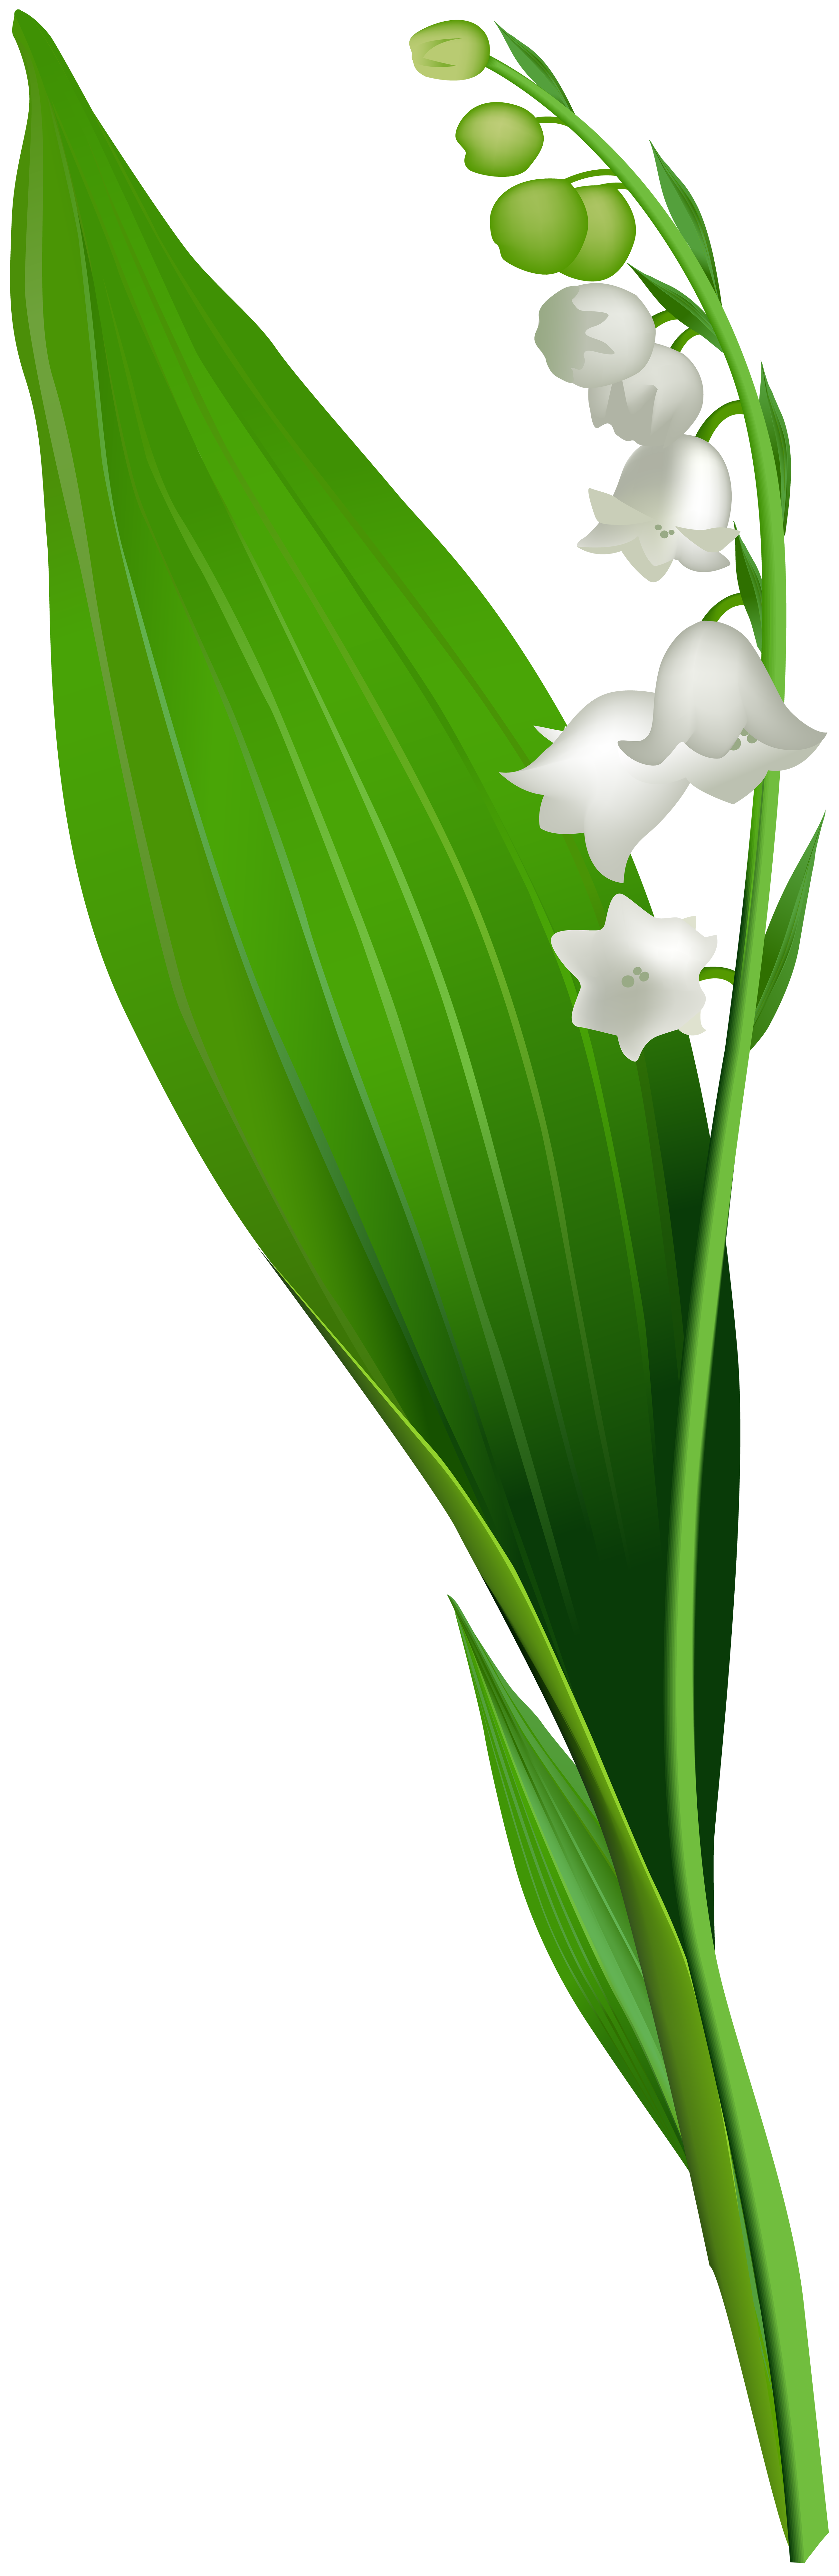 Lily of the valley clipart clipart images gallery for free.